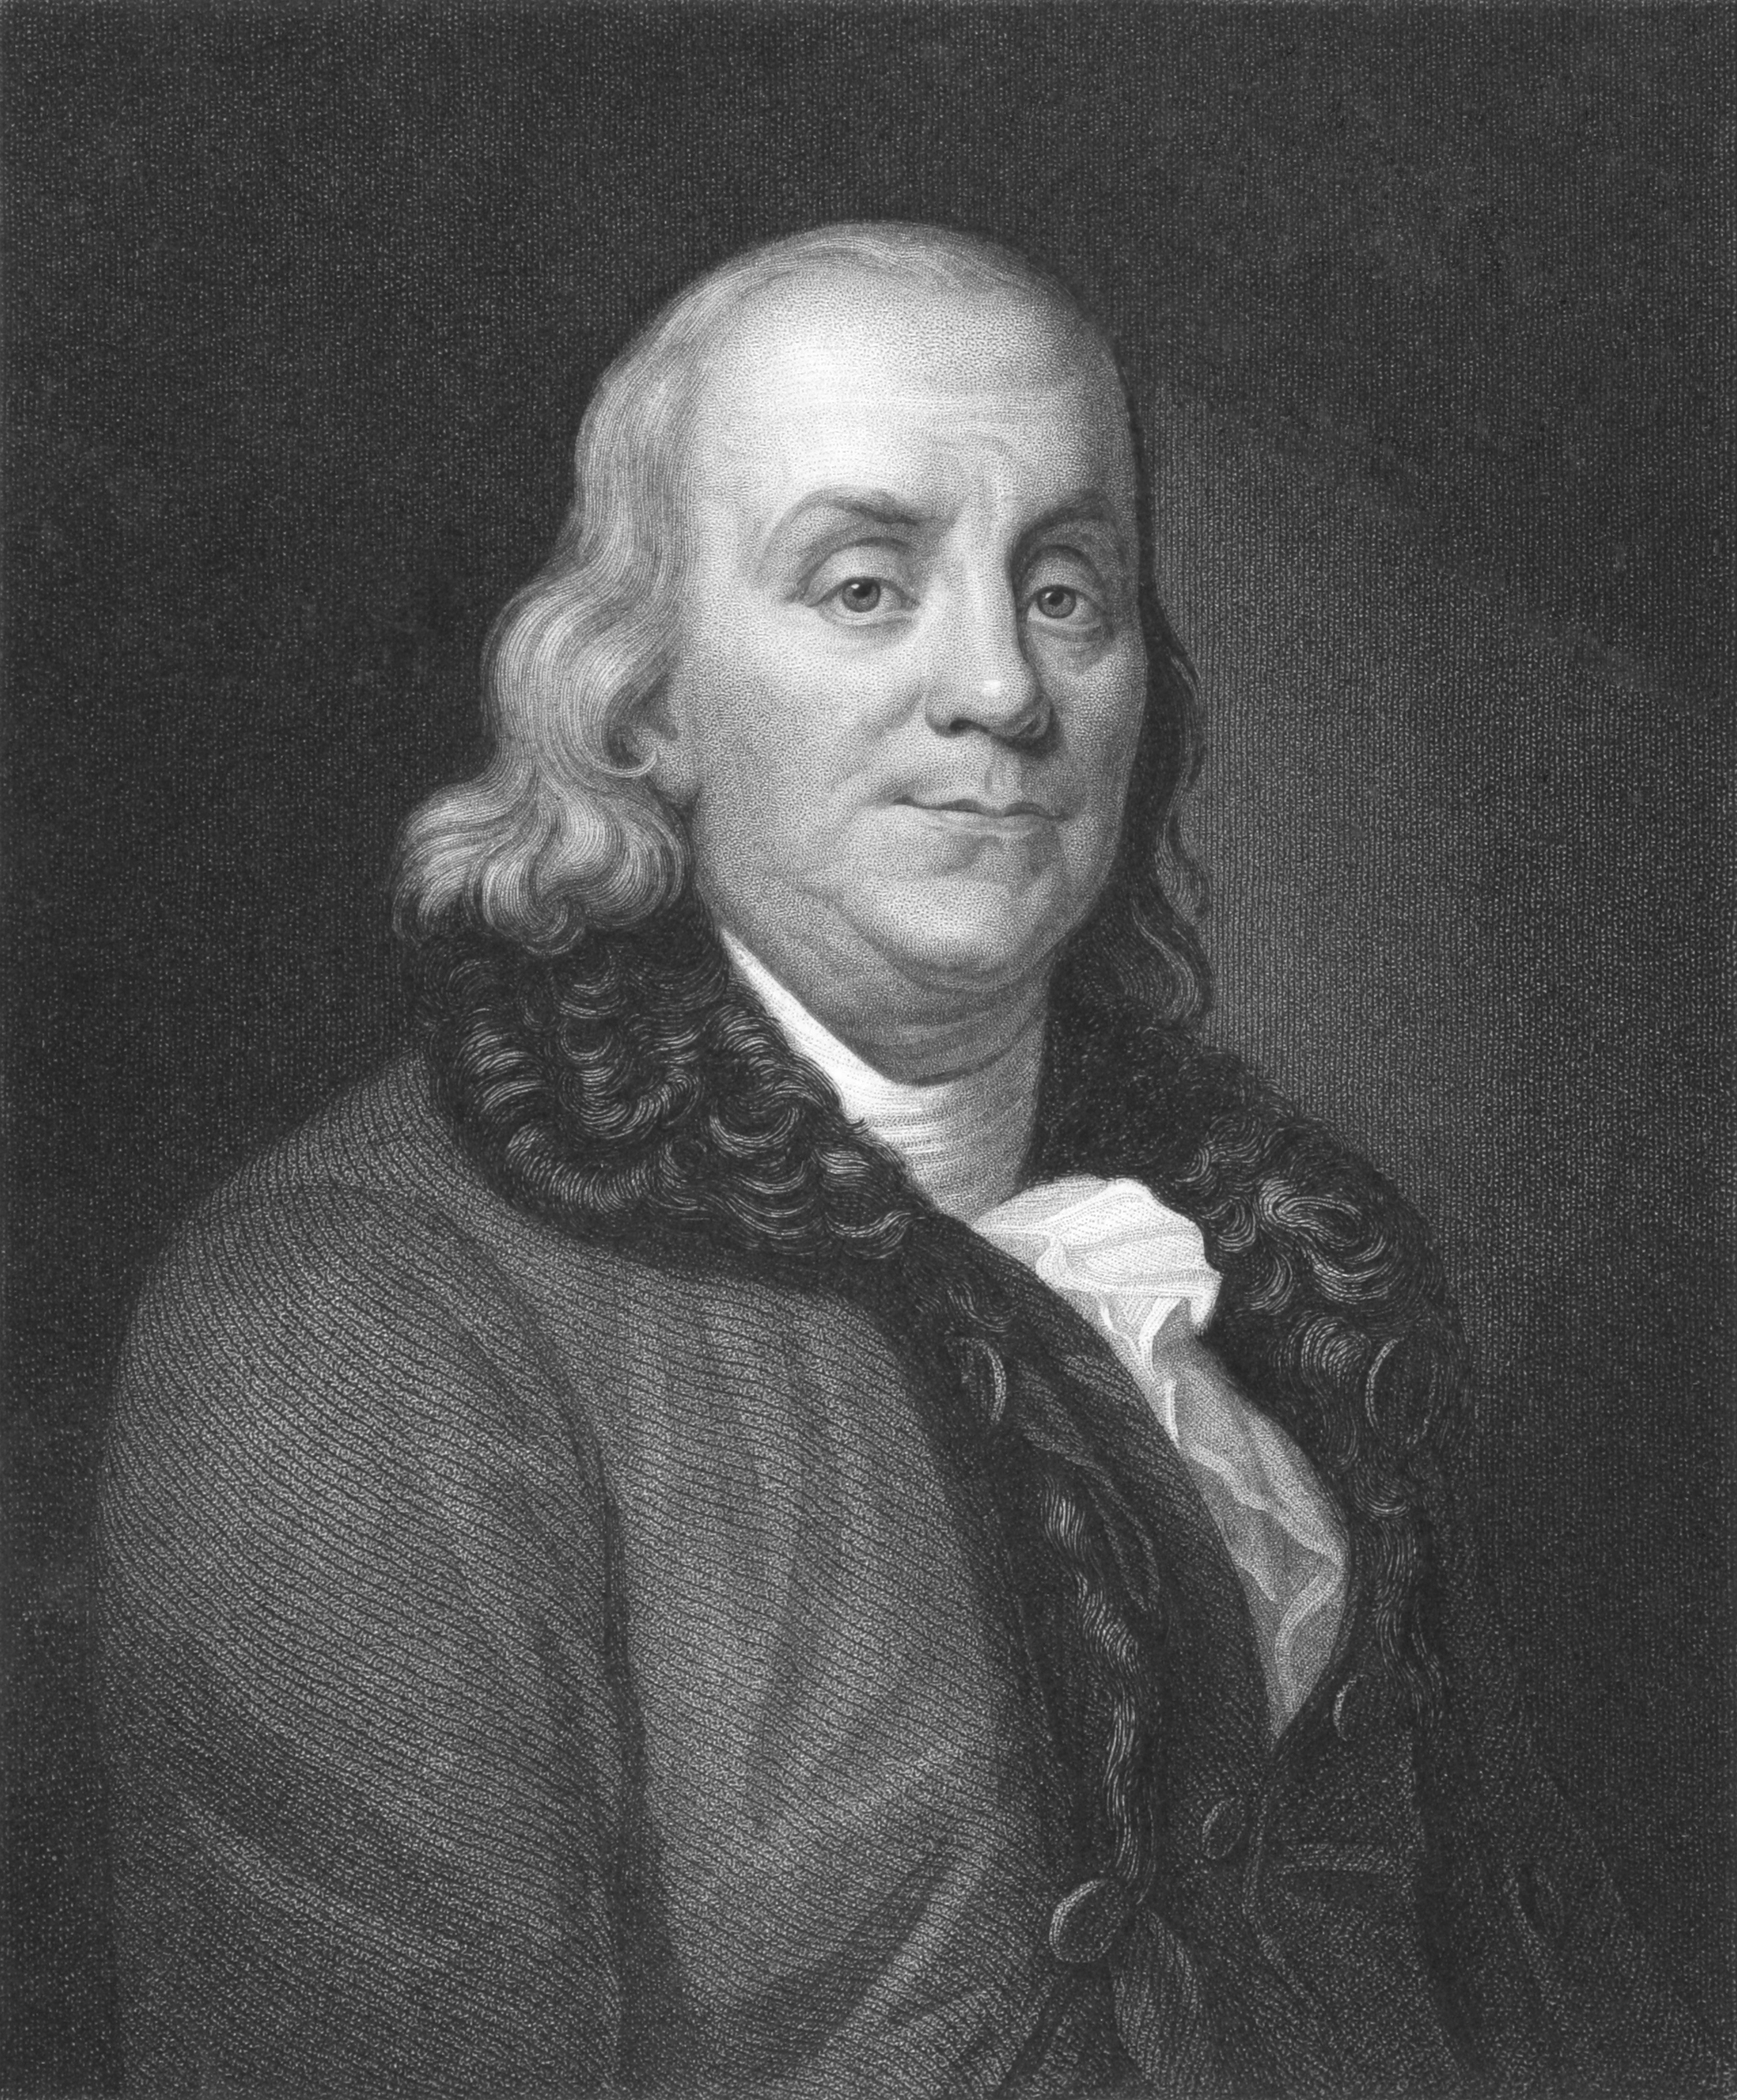 Benjamin Franklin on engraving from the 1850s. One of the founders of the United States of America. Engraved by J. Thomson and published in London by Charles Knight, Ludgate Street & Pall Mall East.